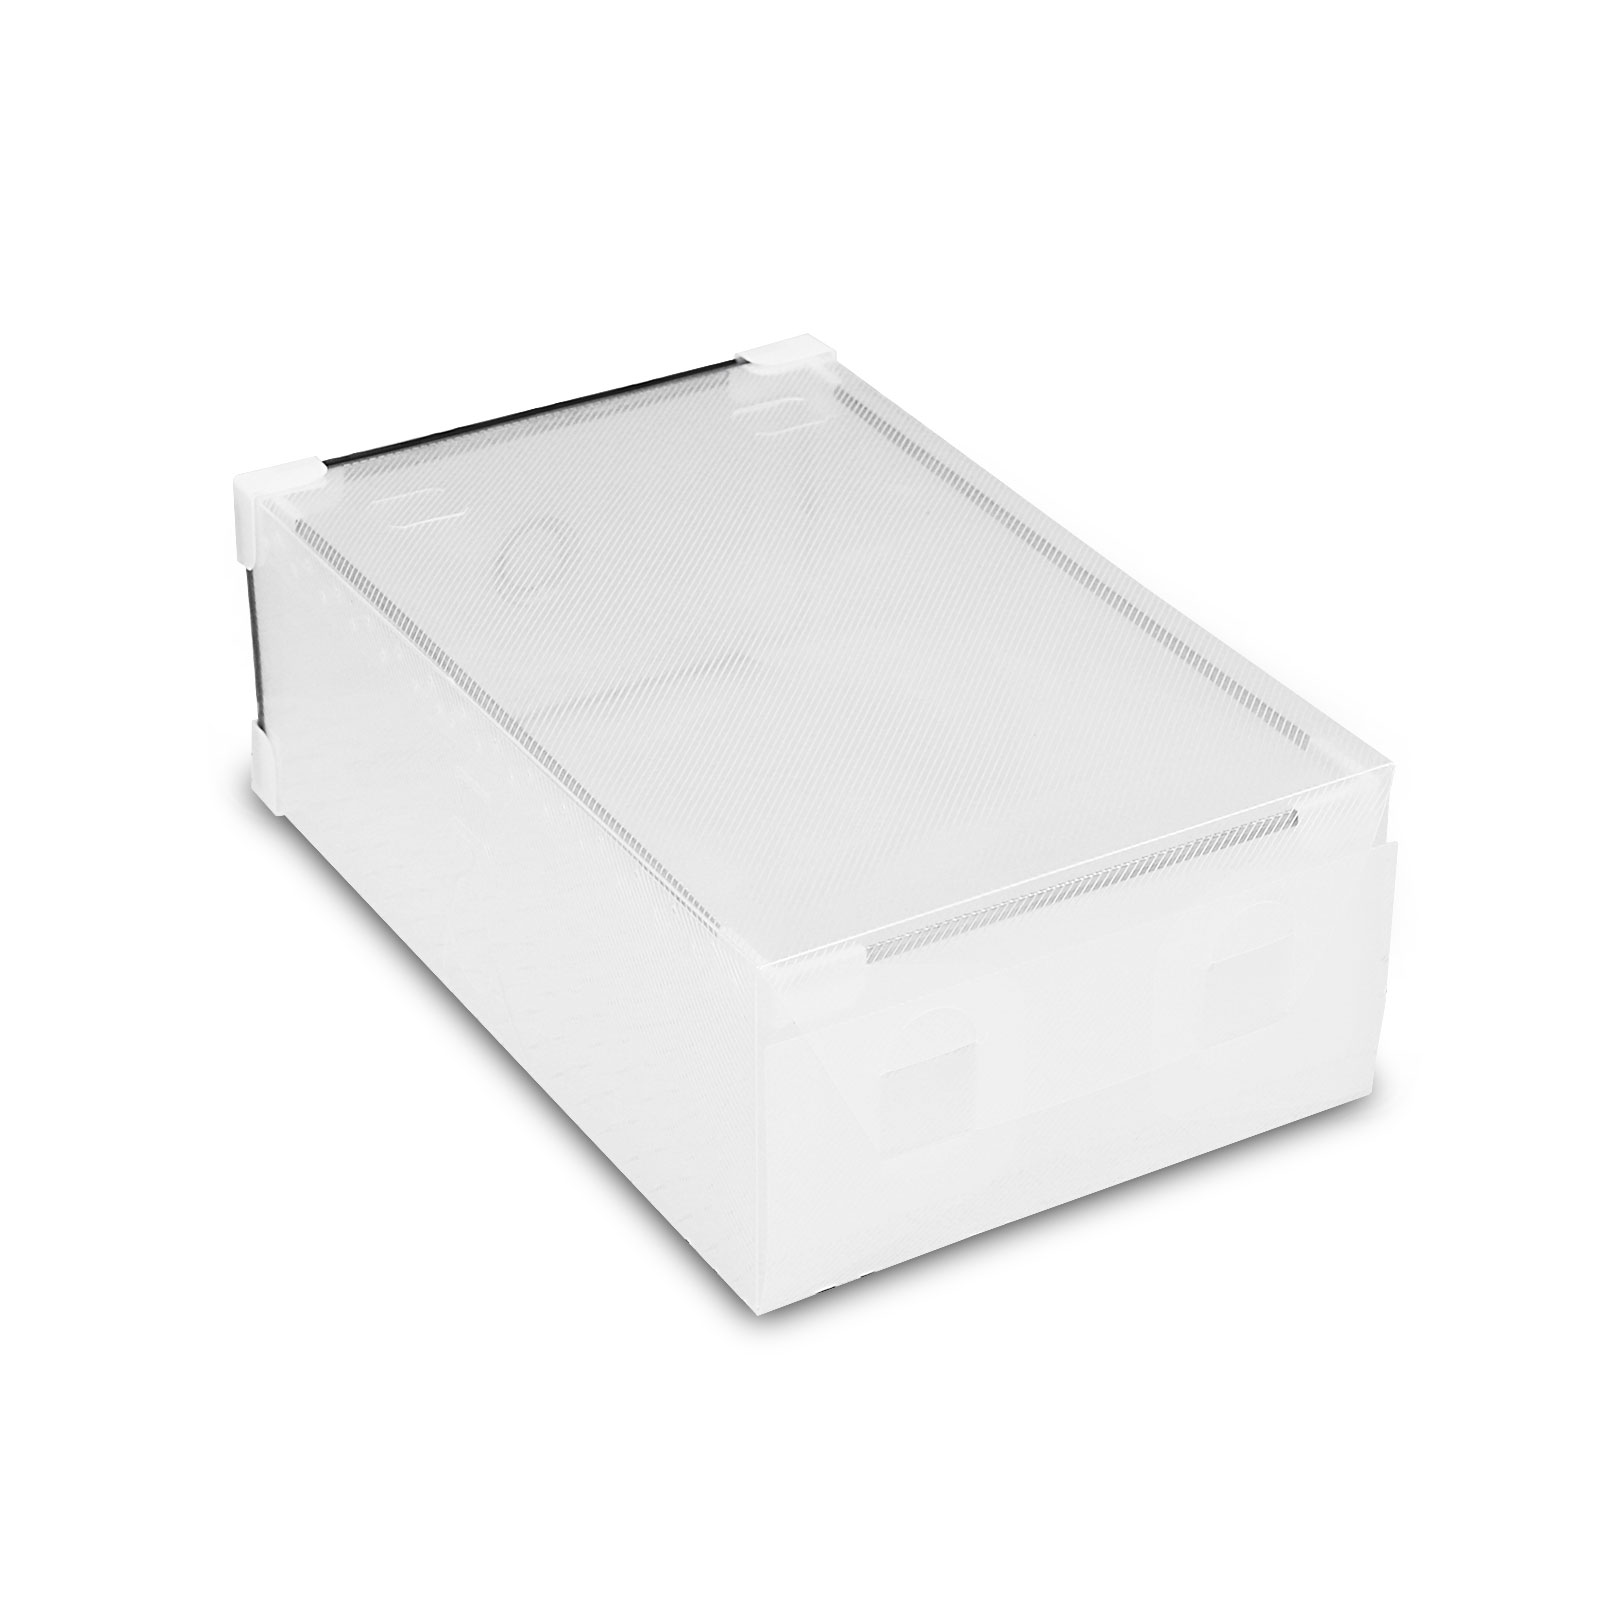 Shoe Box Australia 60 Pcs Diy Clear Shoe Storage Box Plastic Drawer Case